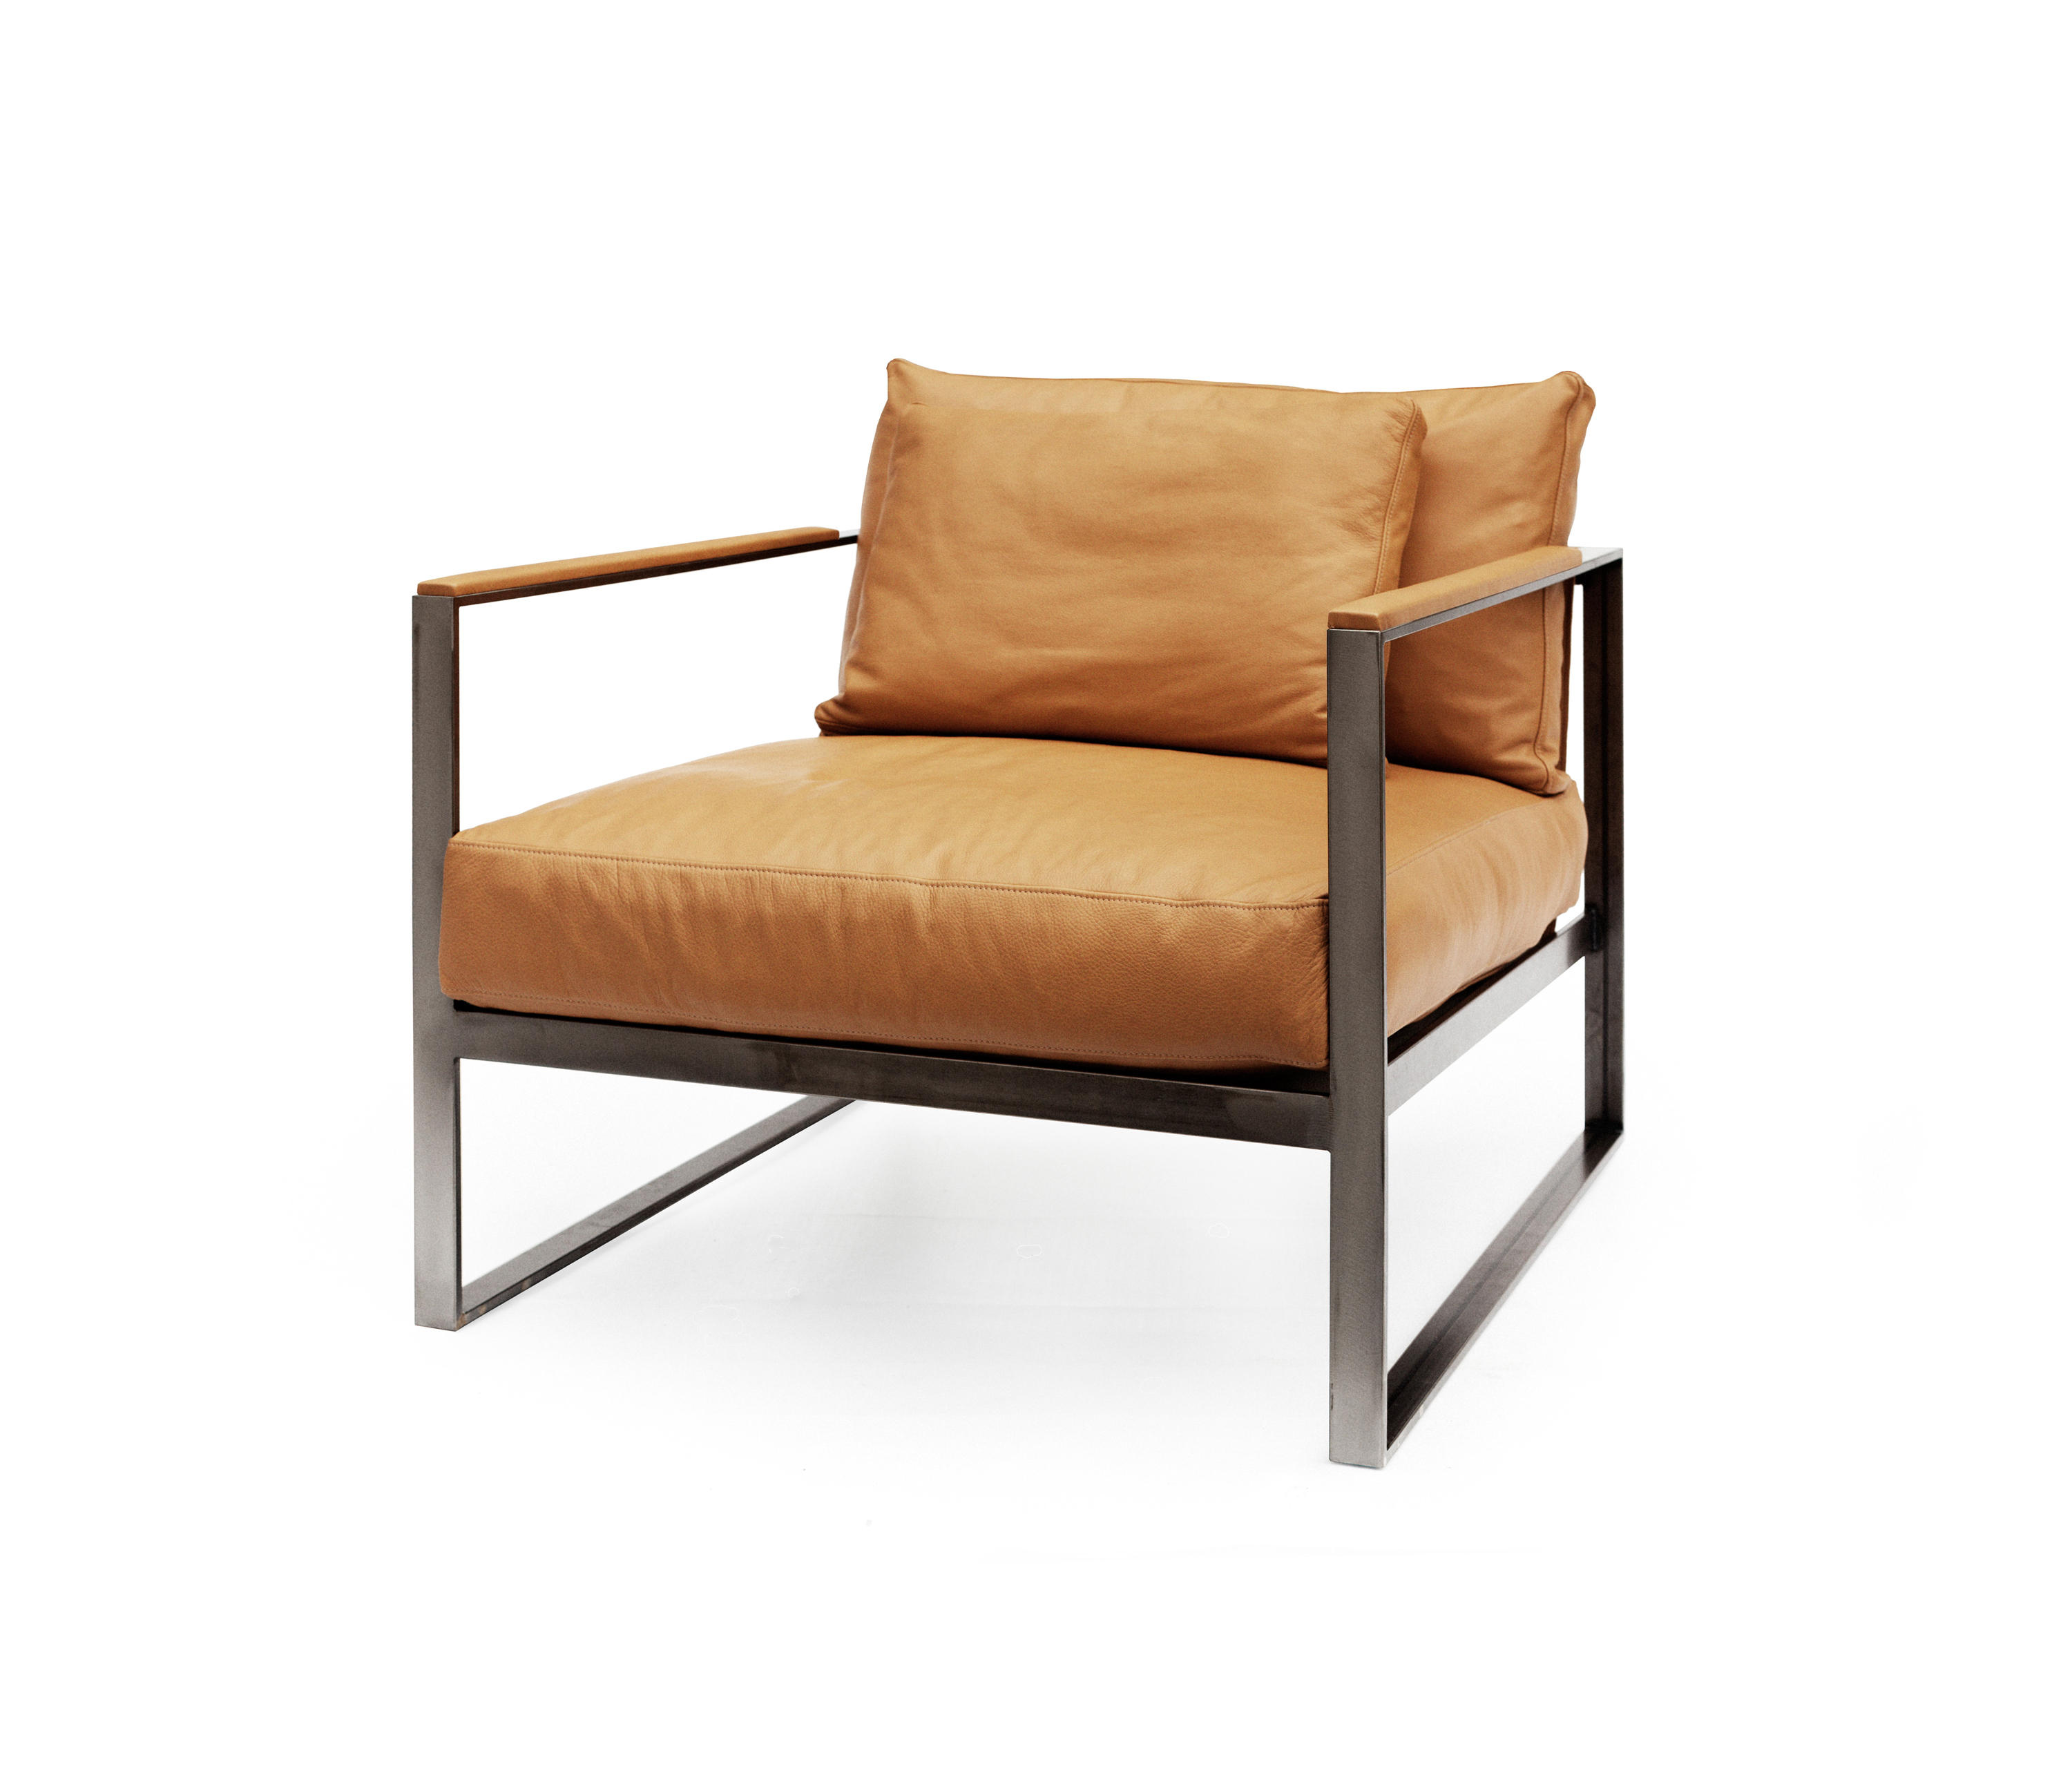 monaco lounge chair - lounge chairs from röshults | architonic